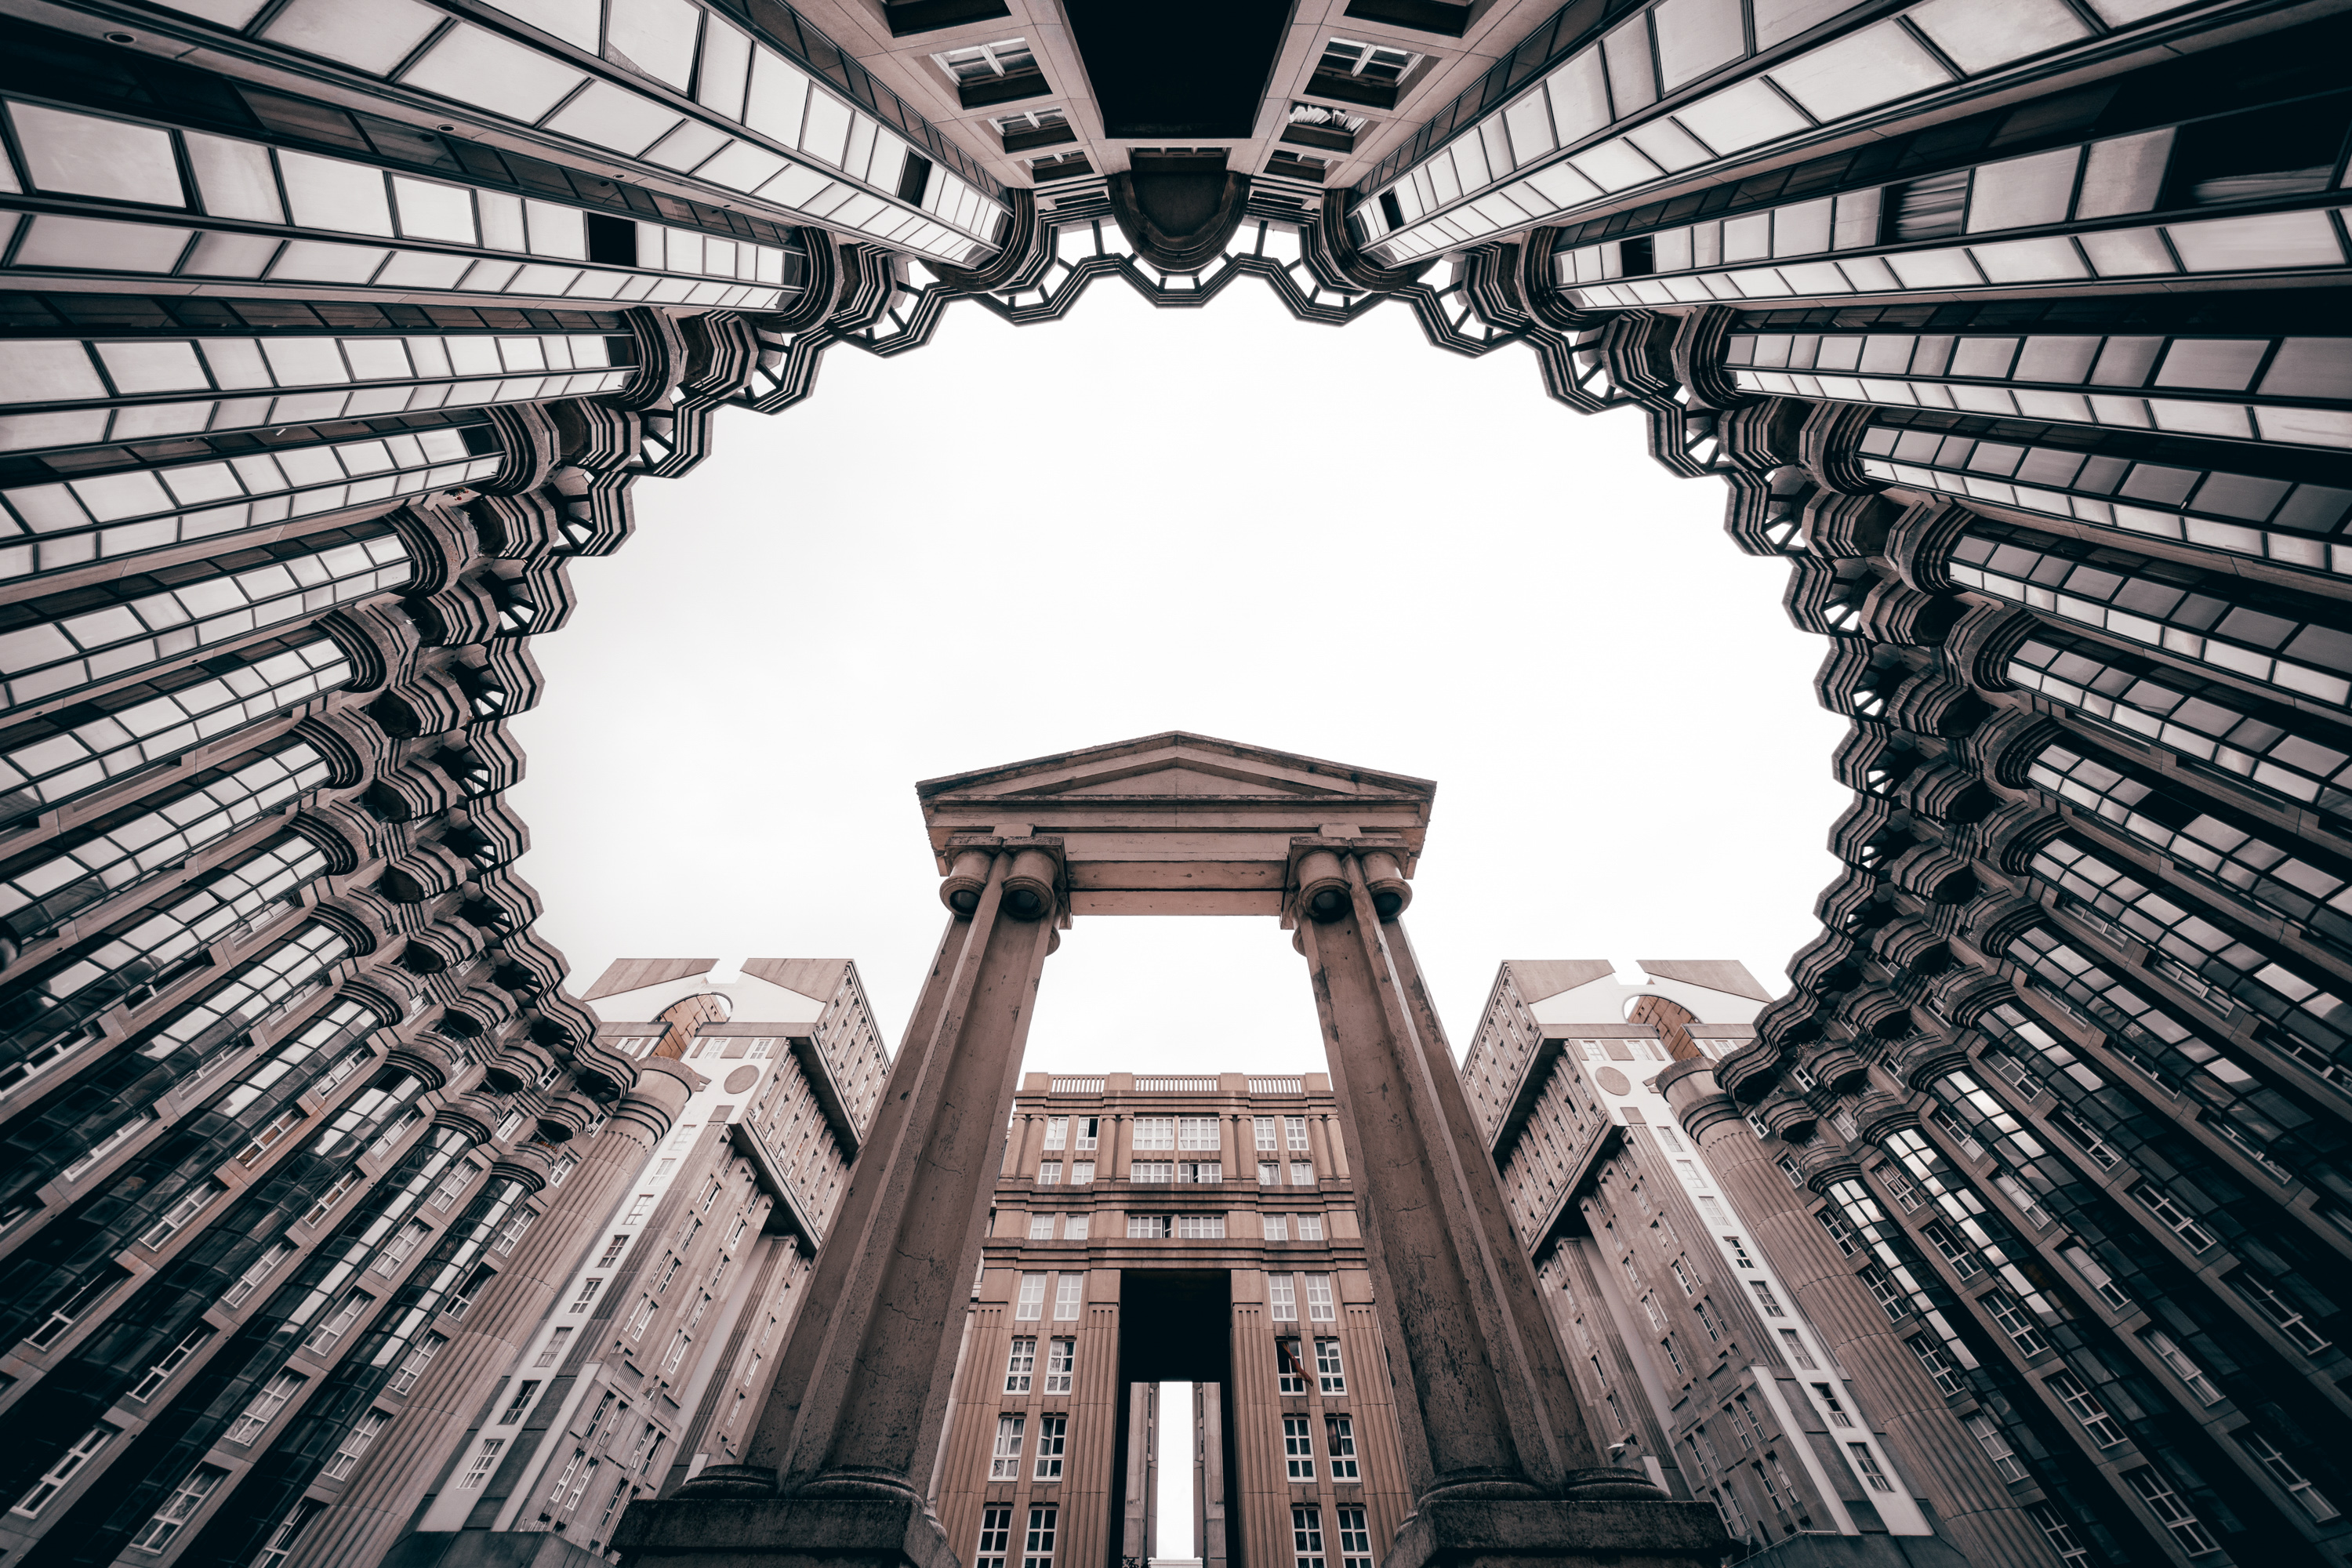 Architecture photography by Maxime Horlaville - MxHpics